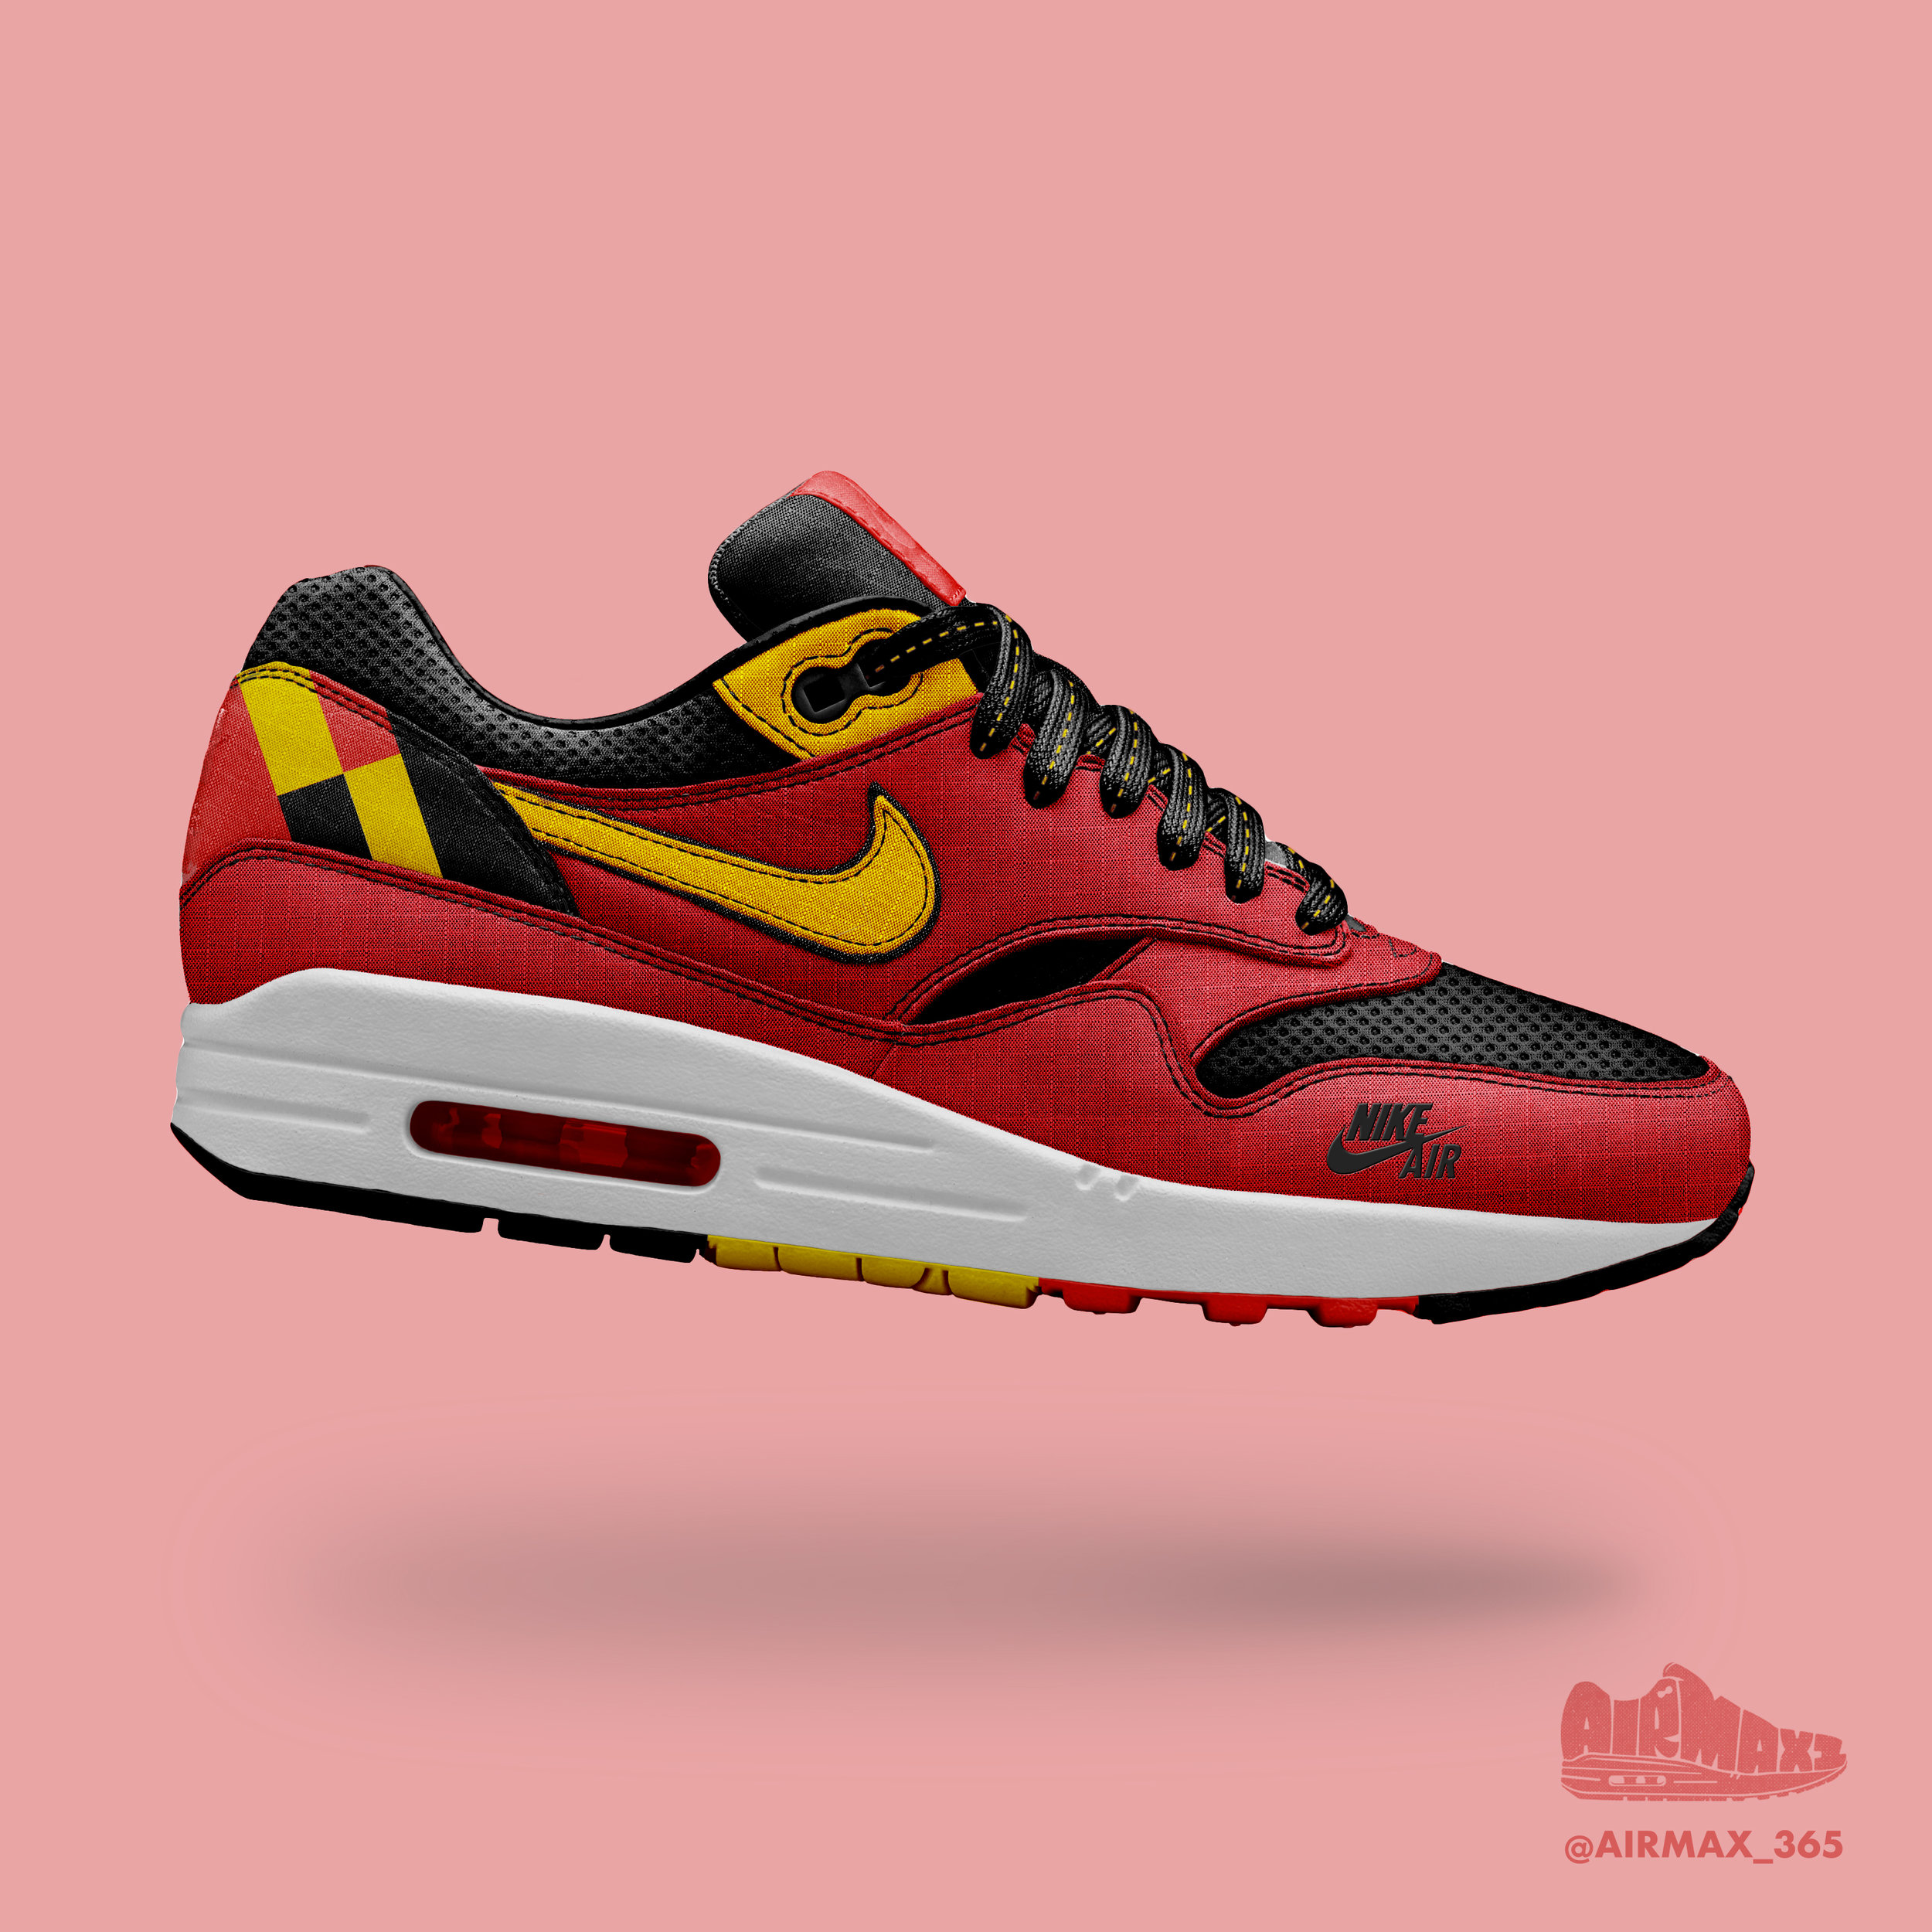 Day 291: Air Max 1 Red Devil